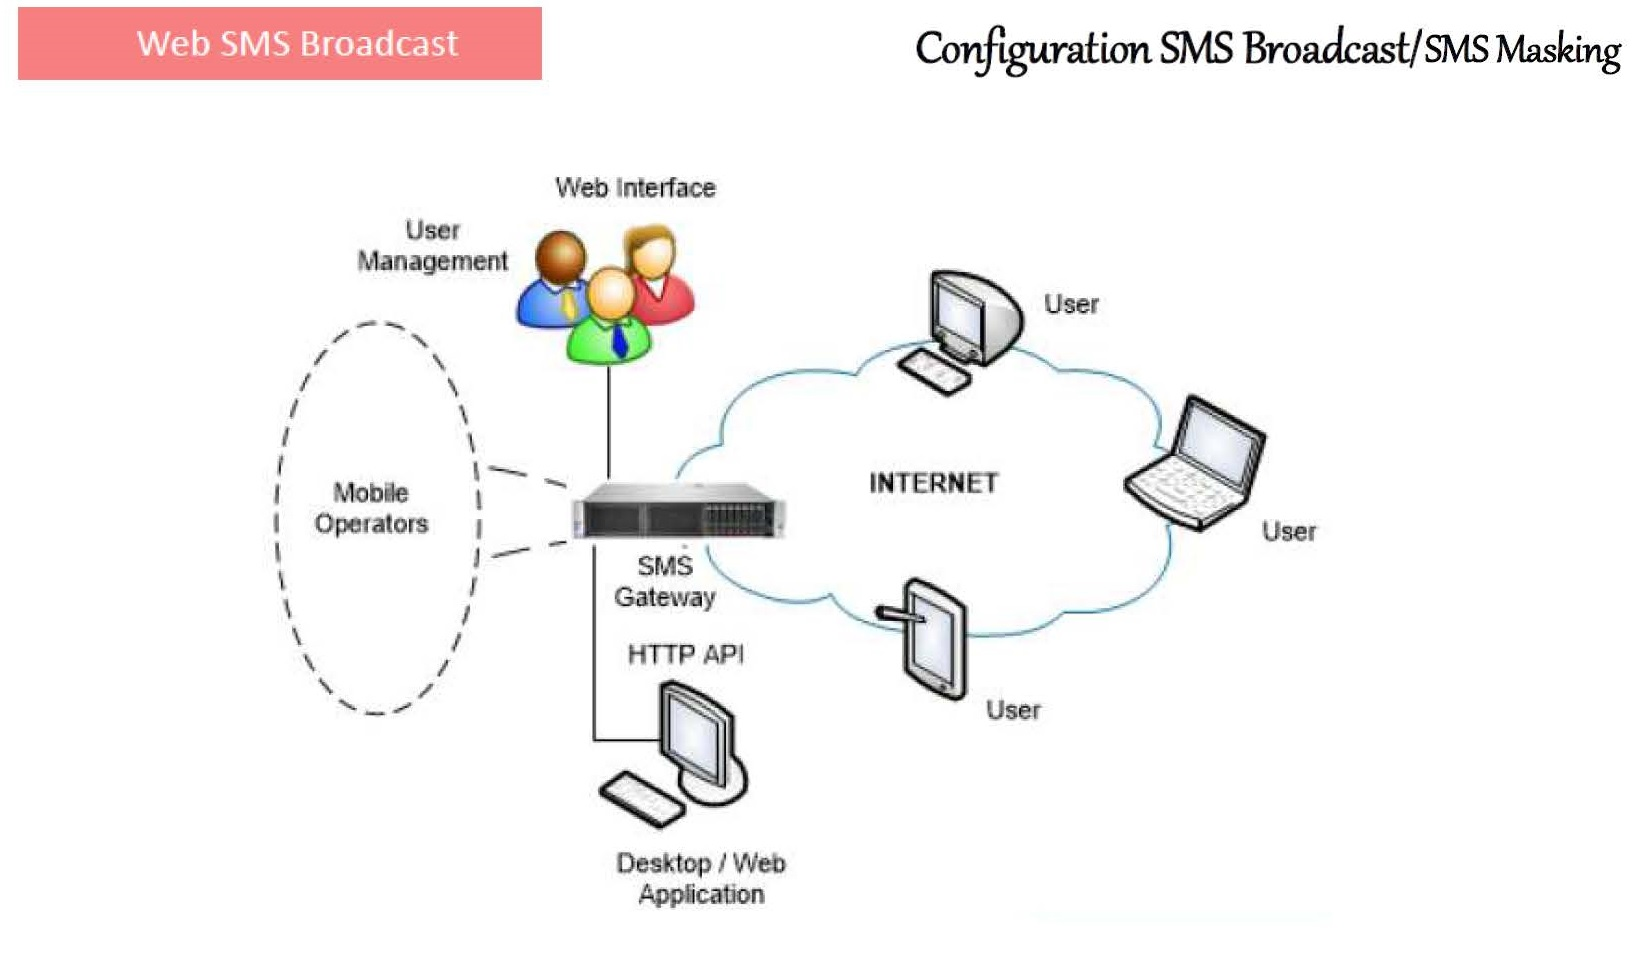 SDG Enterprise Voice Solution for SOHO and SMB segment Page 28